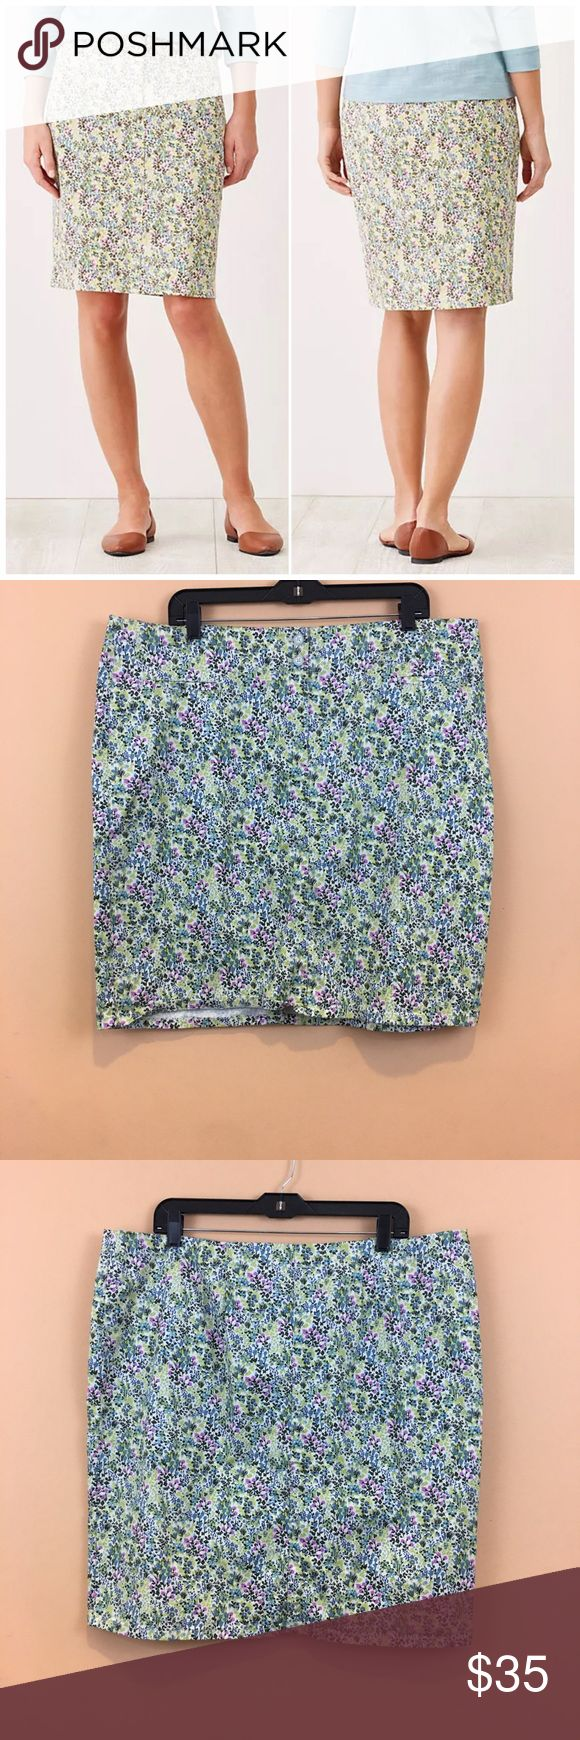 """J.Jill The Live in Chino Pencil Skirt The ultrasoft chino fabric you love, in a straight floral skirt with a touch of stretch. Fly front with double-button closure. Flat topstitched waist. Front pockets. Darts at the back waist. Back vent.  Waist laying flat 20.5""""  Length 22.5""""  97% cotton; 3% spandex J. Jill Skirts Pencil"""